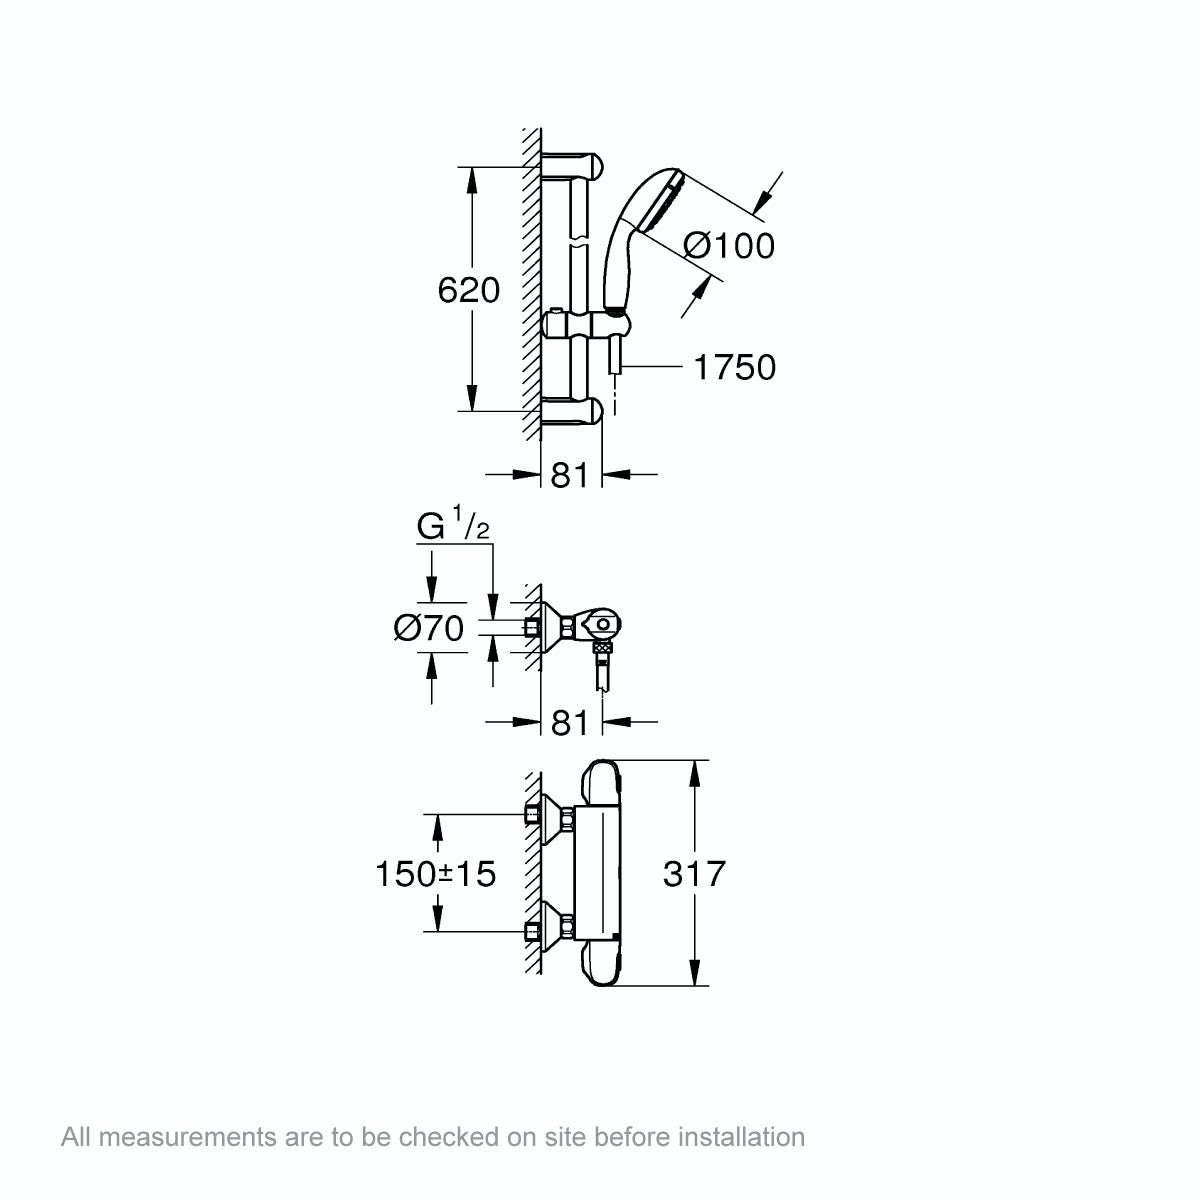 Dimensions for Grohe Grohtherm 1000 thermostatic shower set